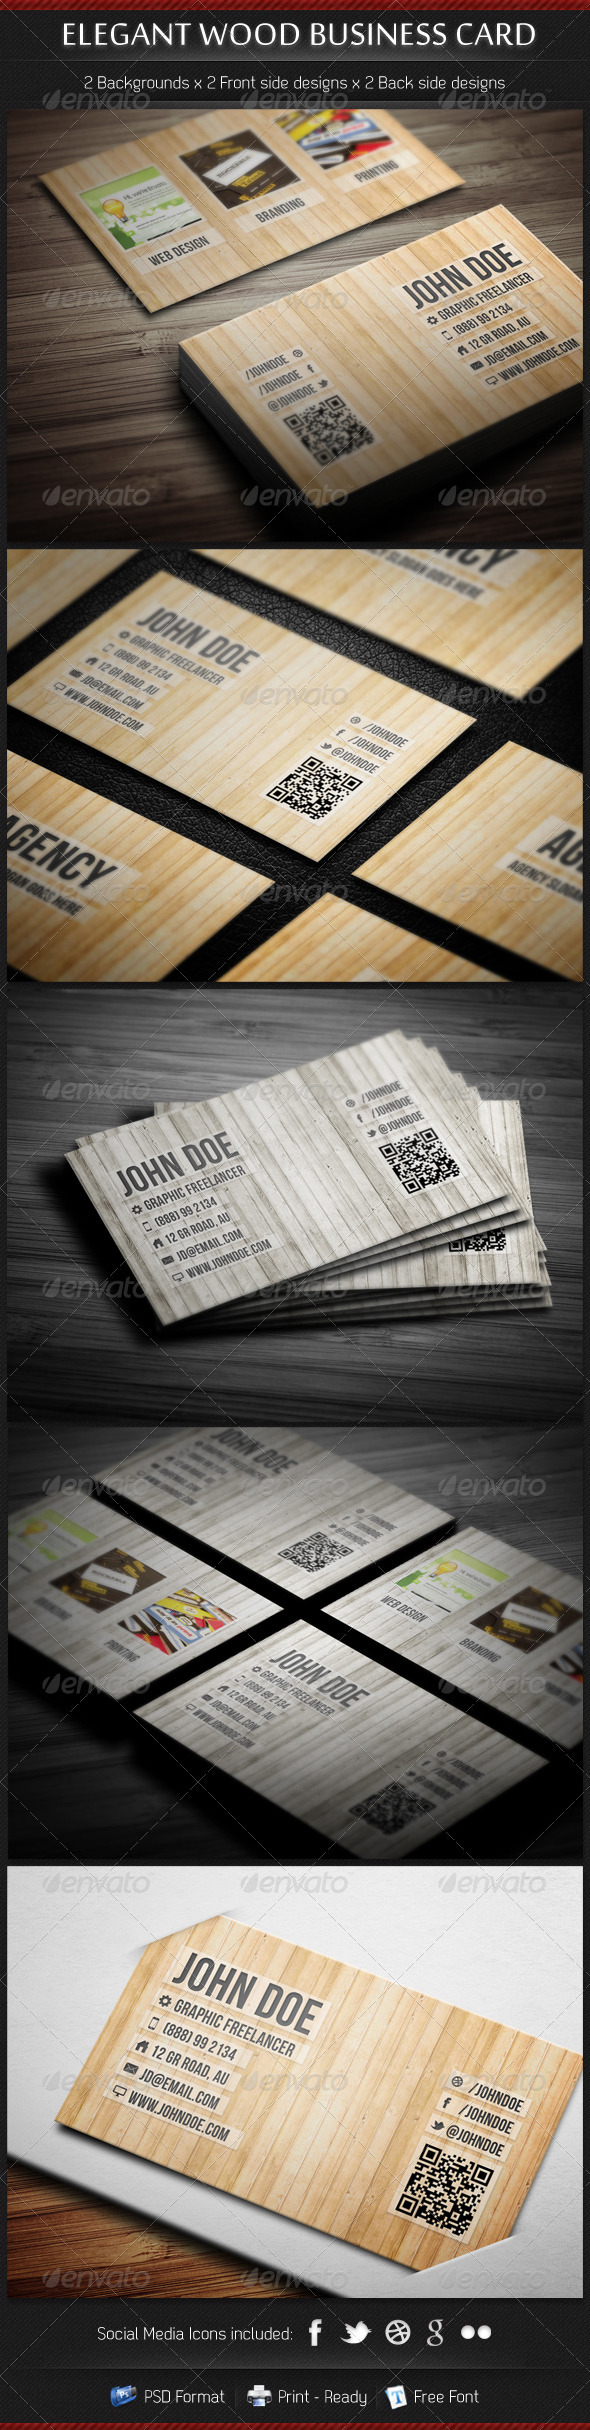 Book of woodworking business card templates in thailand by michael wonderful wooden business cards printed wood that looks natural and unique magicingreecefo Image collections